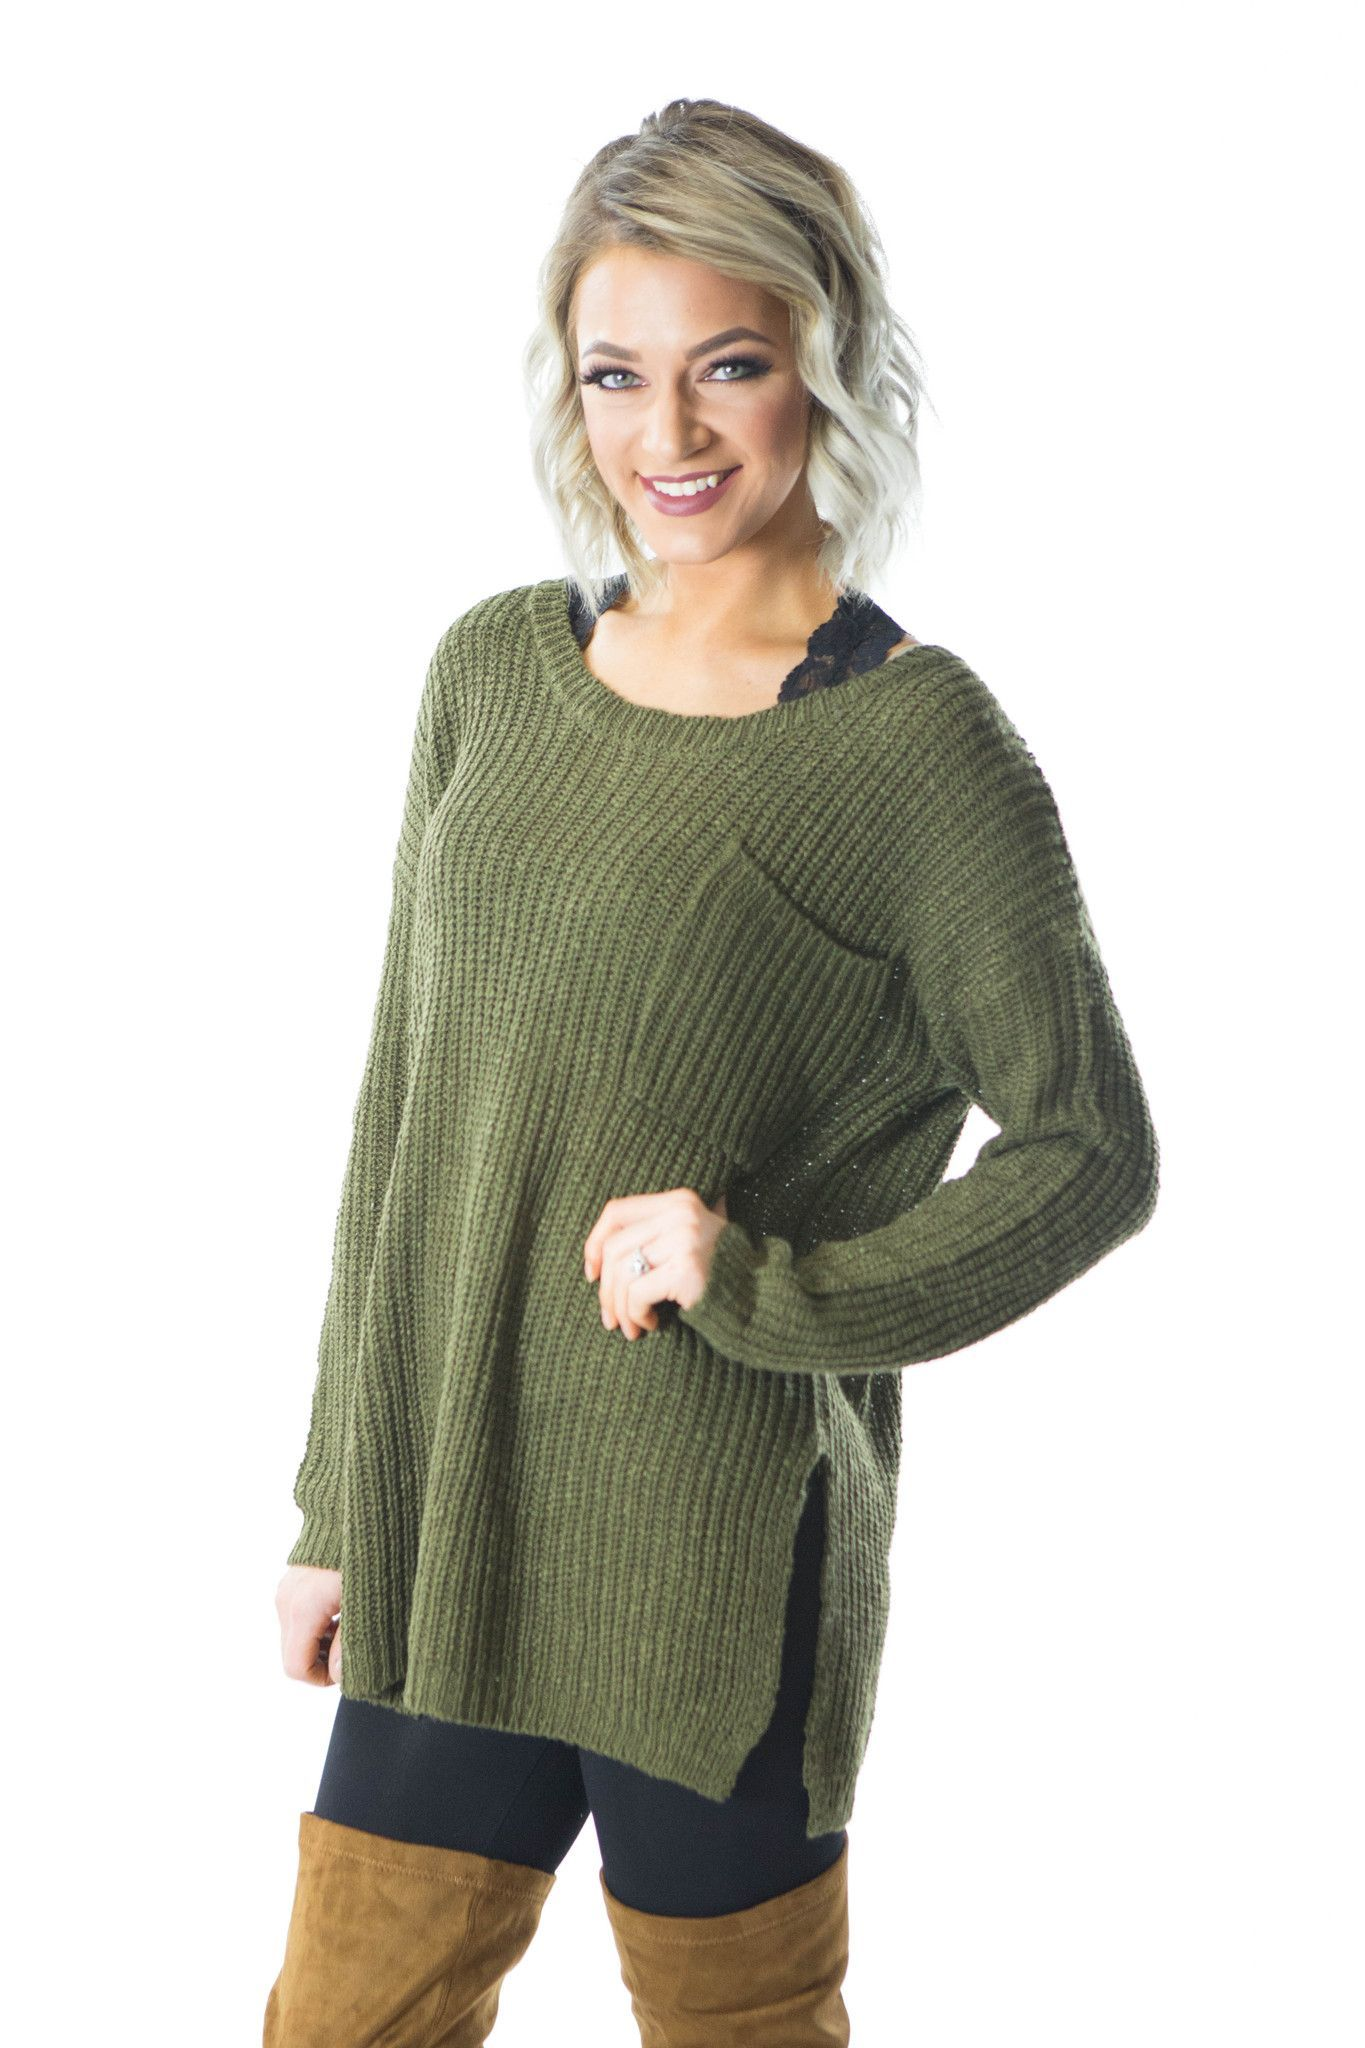 Trendy Knits- Olive Sweater